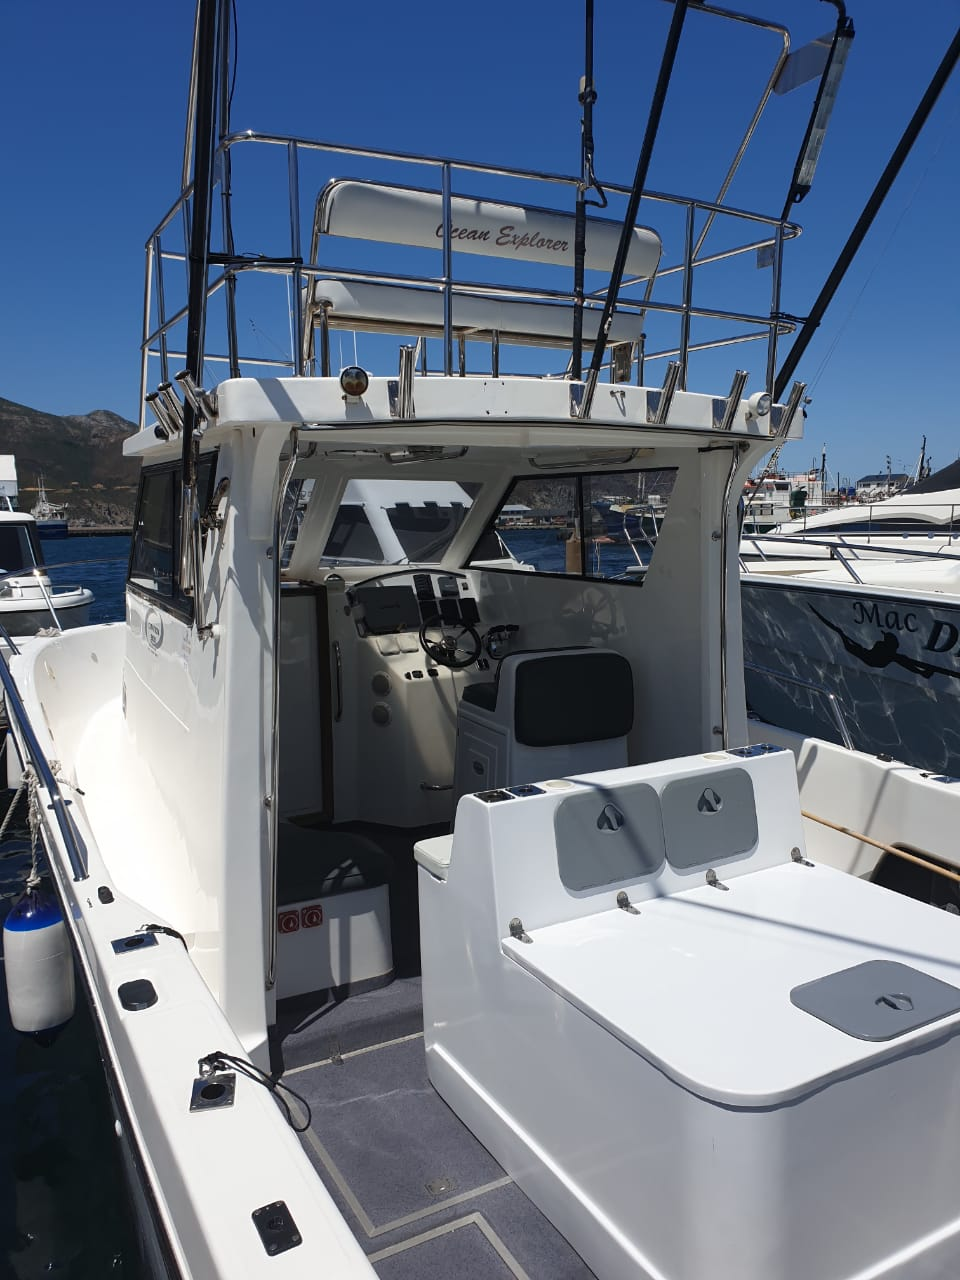 30 foot deep sea fishing cape town charter boat